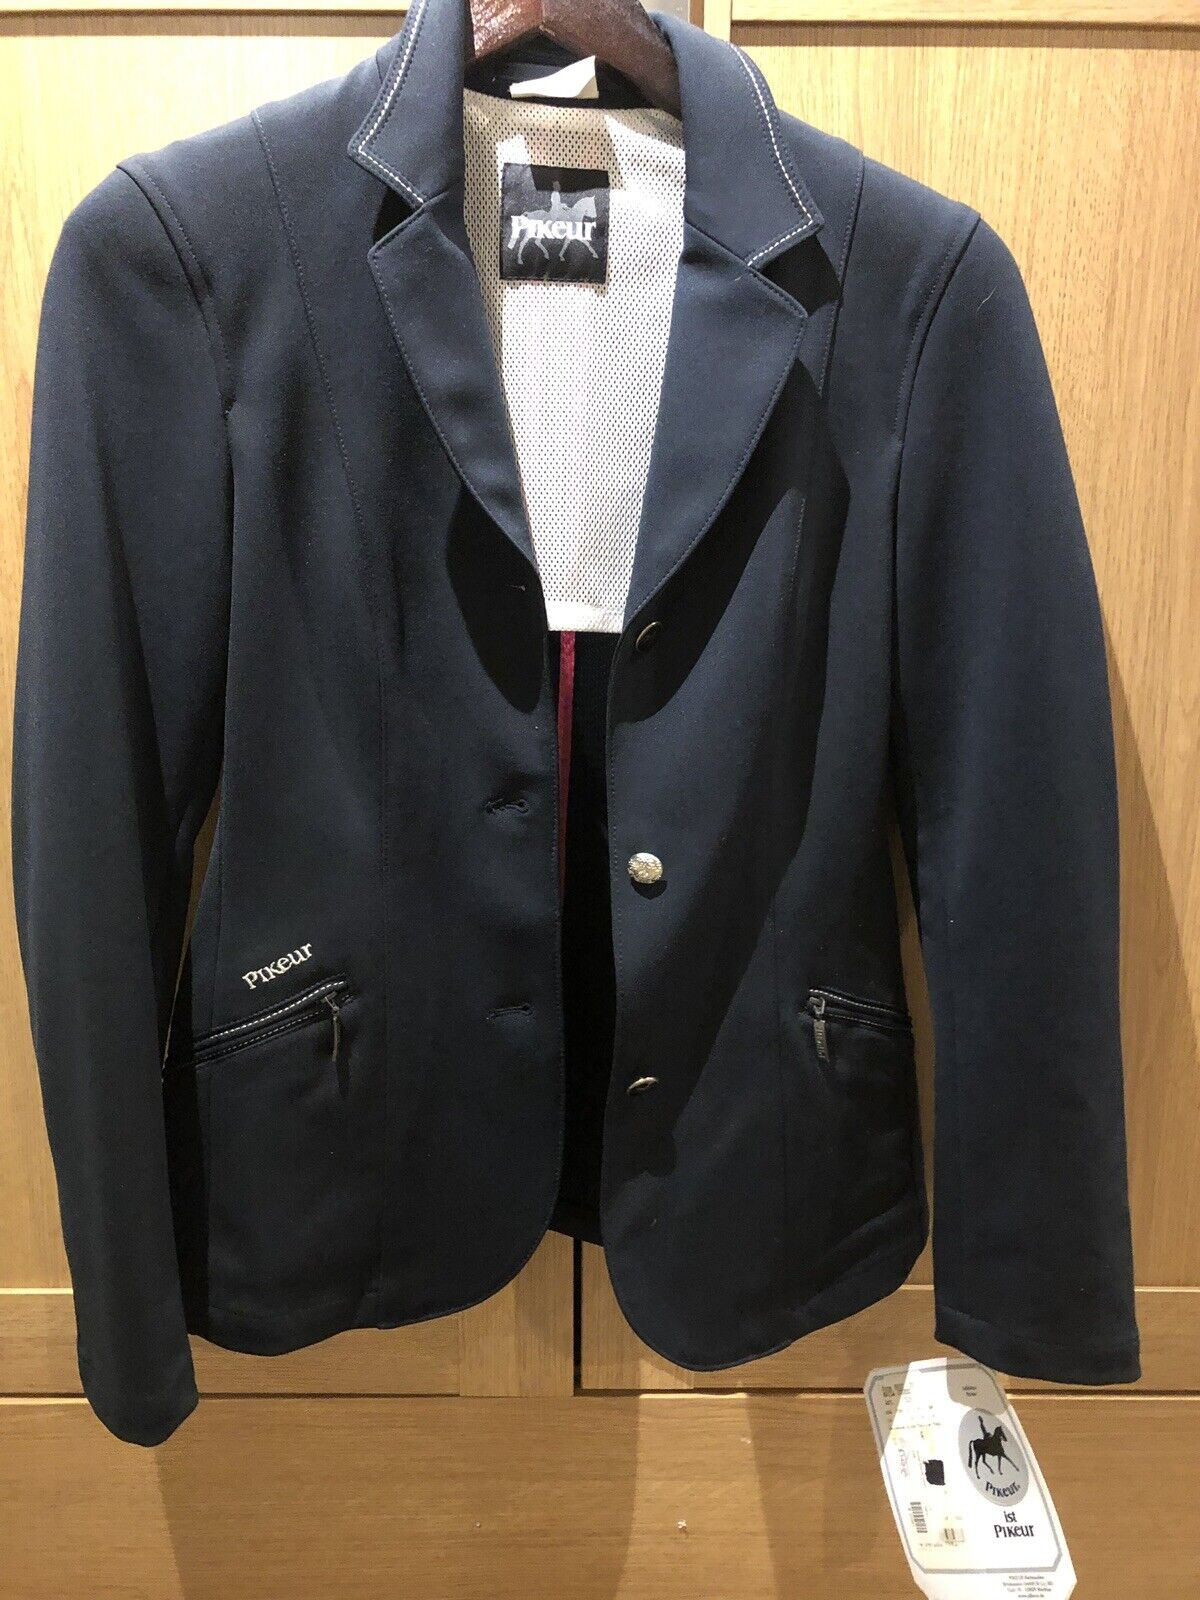 Pikeur Mayla Navy Soft Shell Show Veste initialeHommest  350 neuf étiquettes